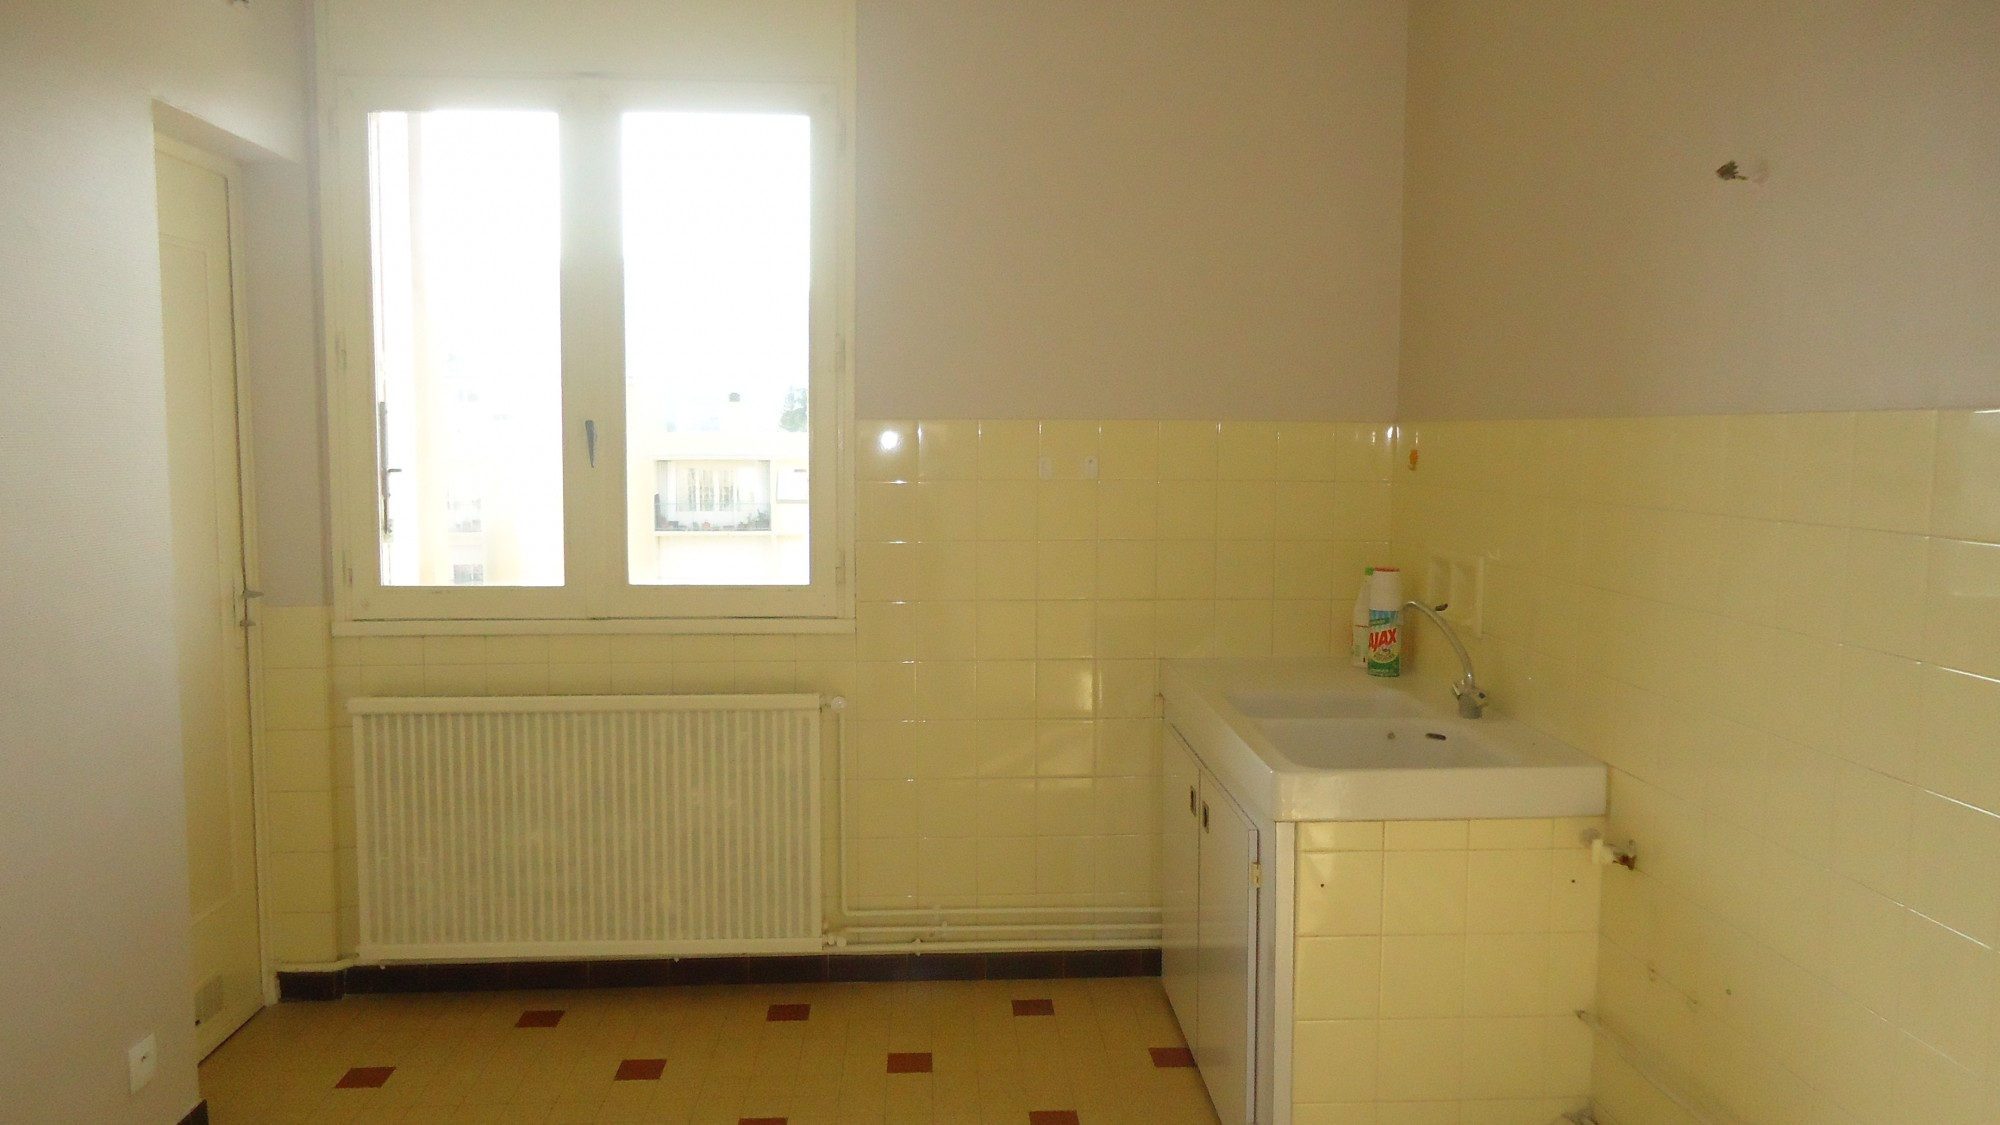 Guilherand granges location appartement 3 chambres avec garage location agence immobili re - Location guilherand granges ...